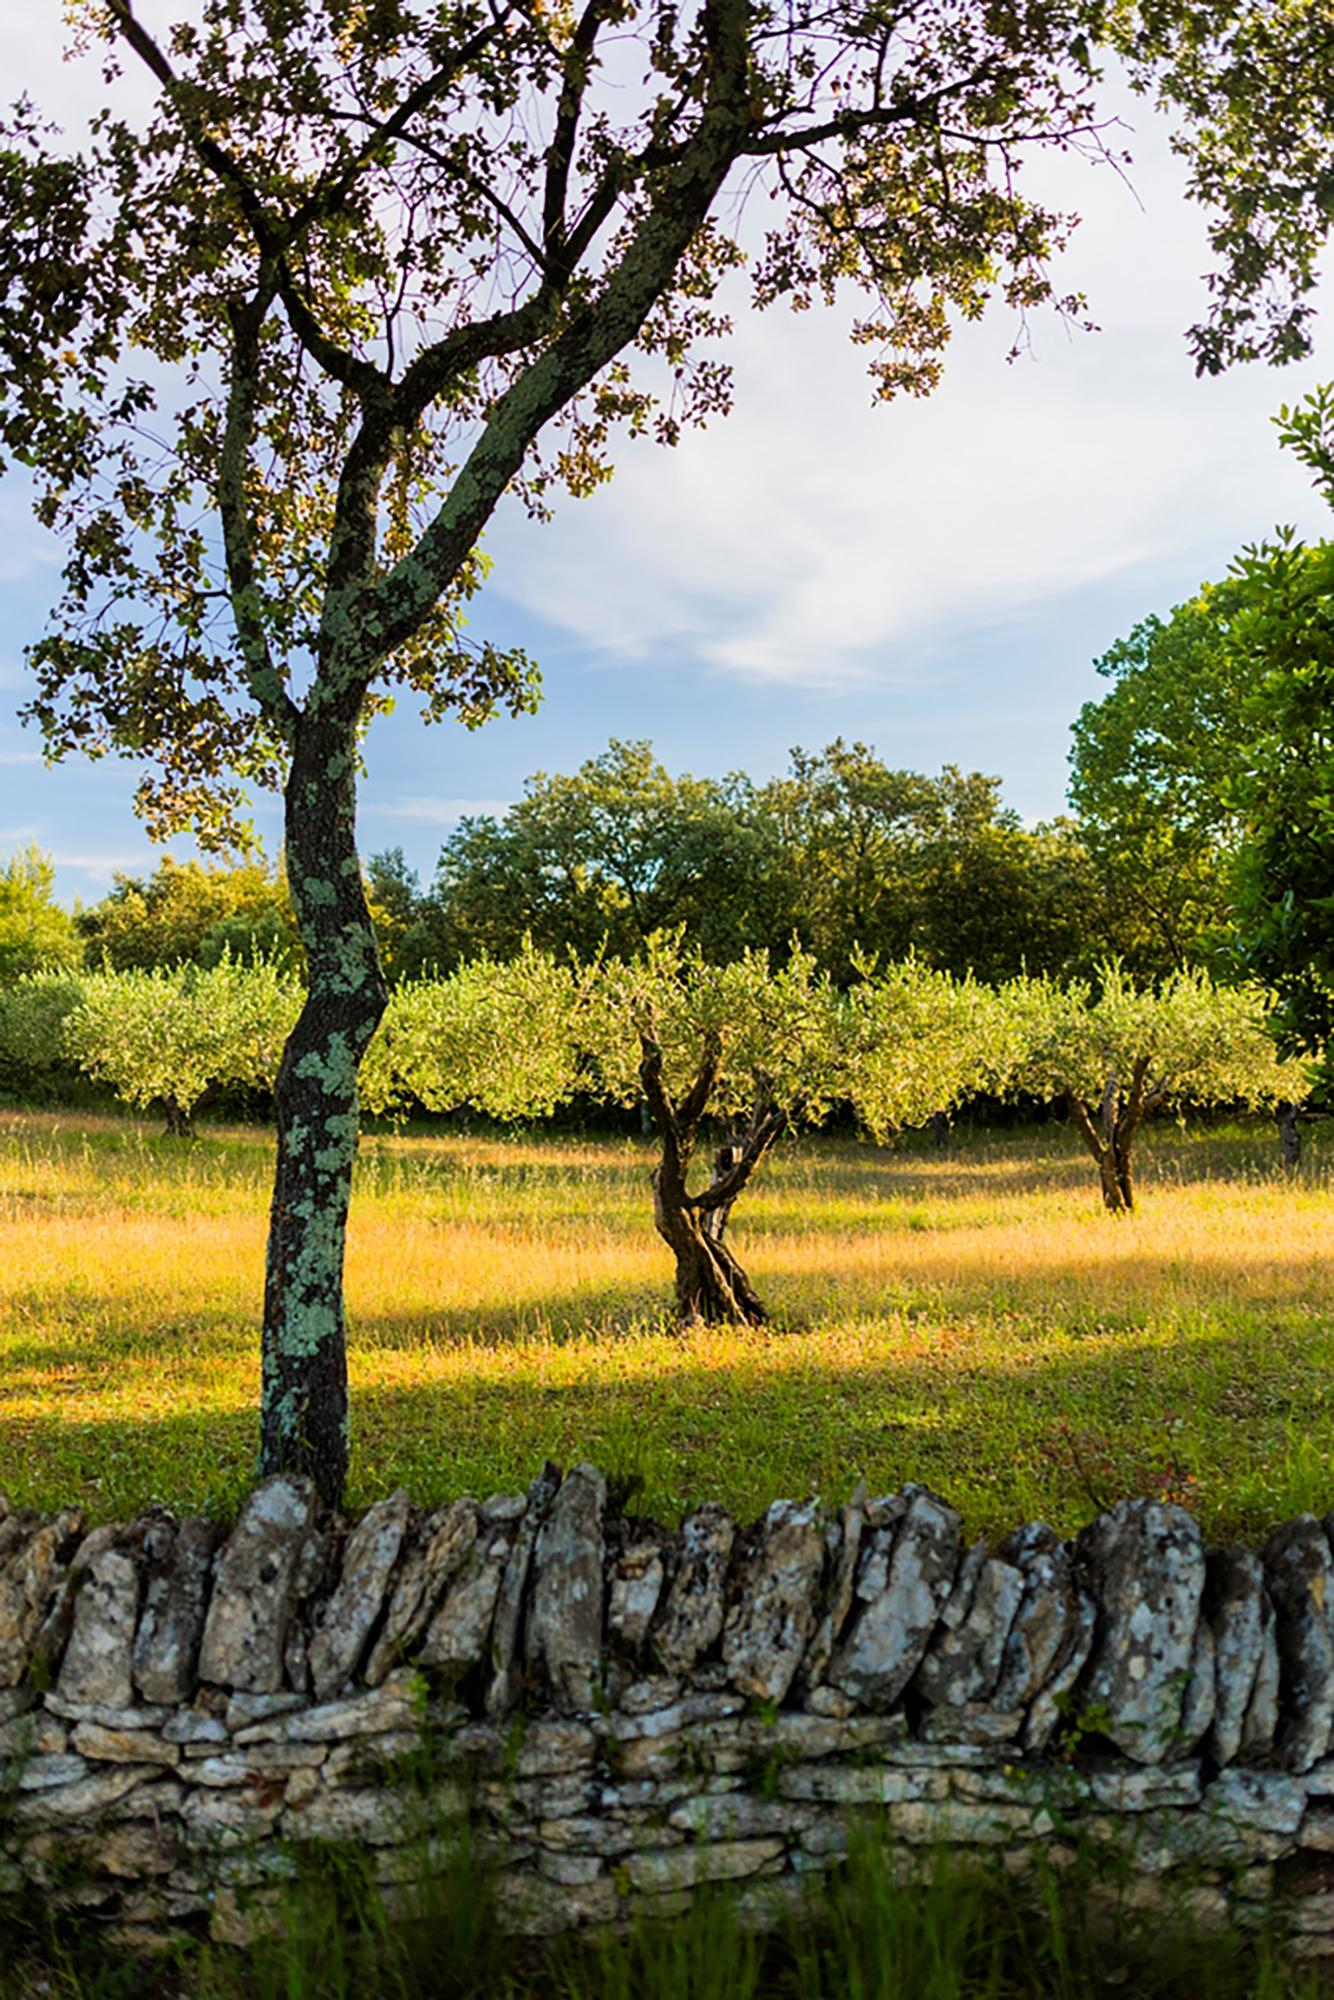 "The ""Mémoires de Garrigue"" open-air exhibition is a 1.4-kilometre marked trail enclosed by dry stone walls and filled with acres of vineyards, olive groves (pictured), wheat fields, and oak trees. - © Aurelio Rodriguez"